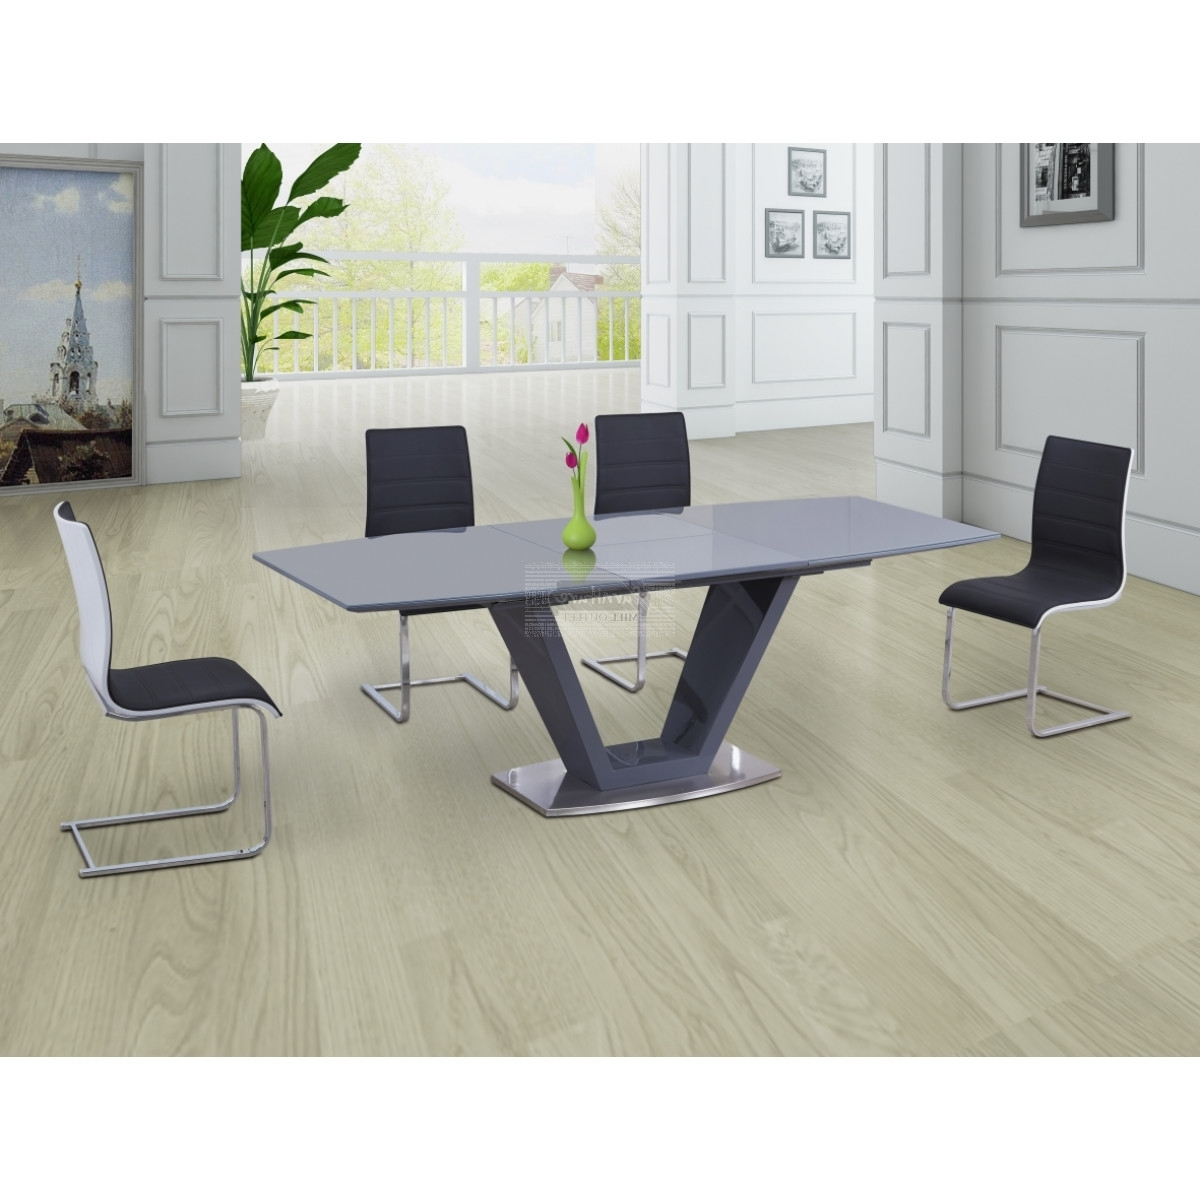 Lorgato Grey High Gloss Extending Dining Table – 160Cm To 220Cm Pertaining To Widely Used High Gloss Extendable Dining Tables (View 5 of 25)